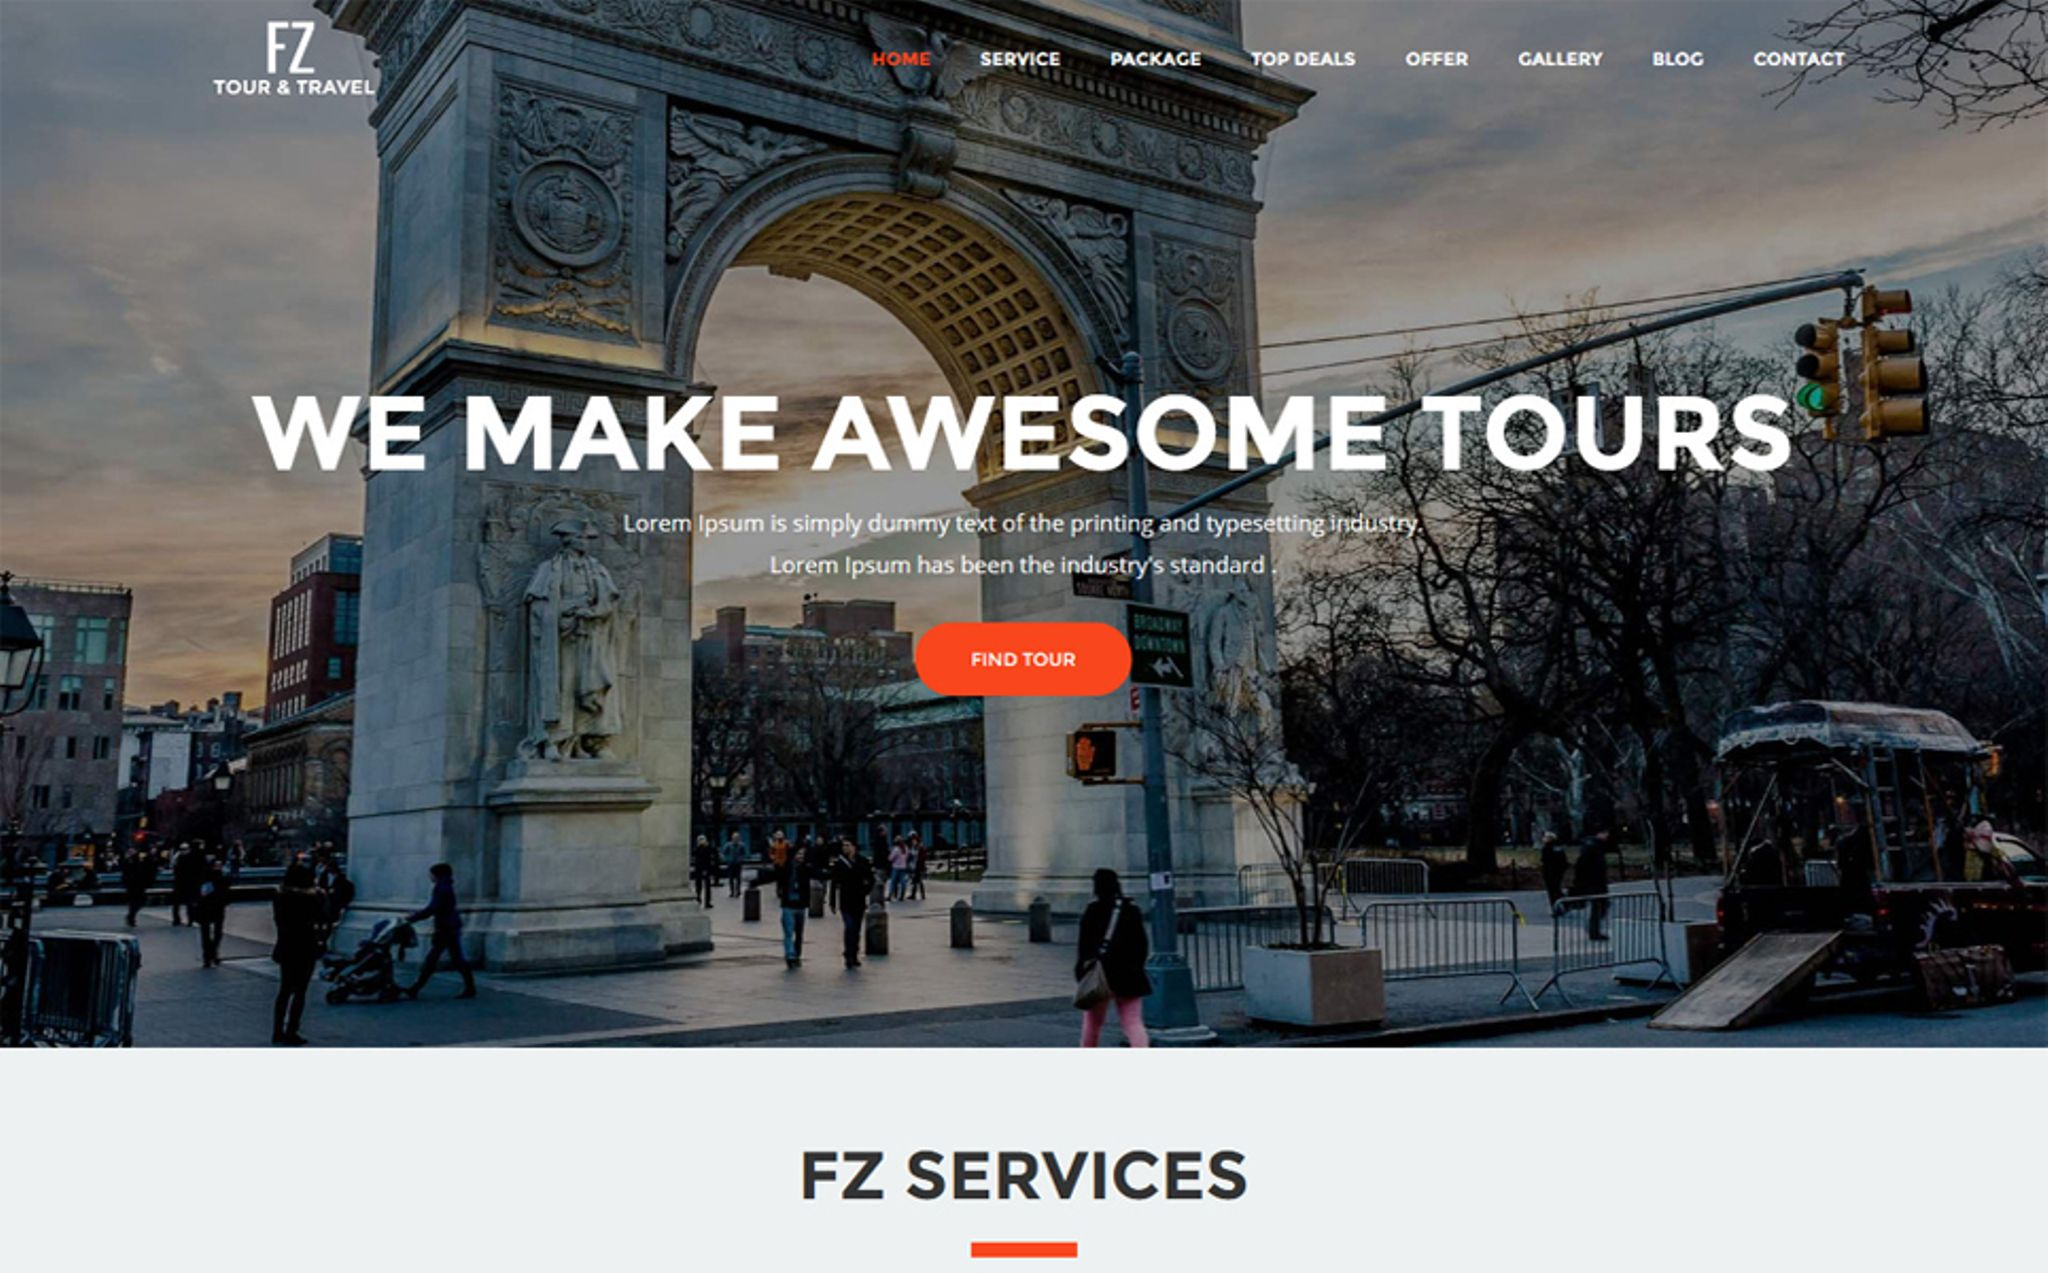 FZ - Tour & Travel Agency Website Template